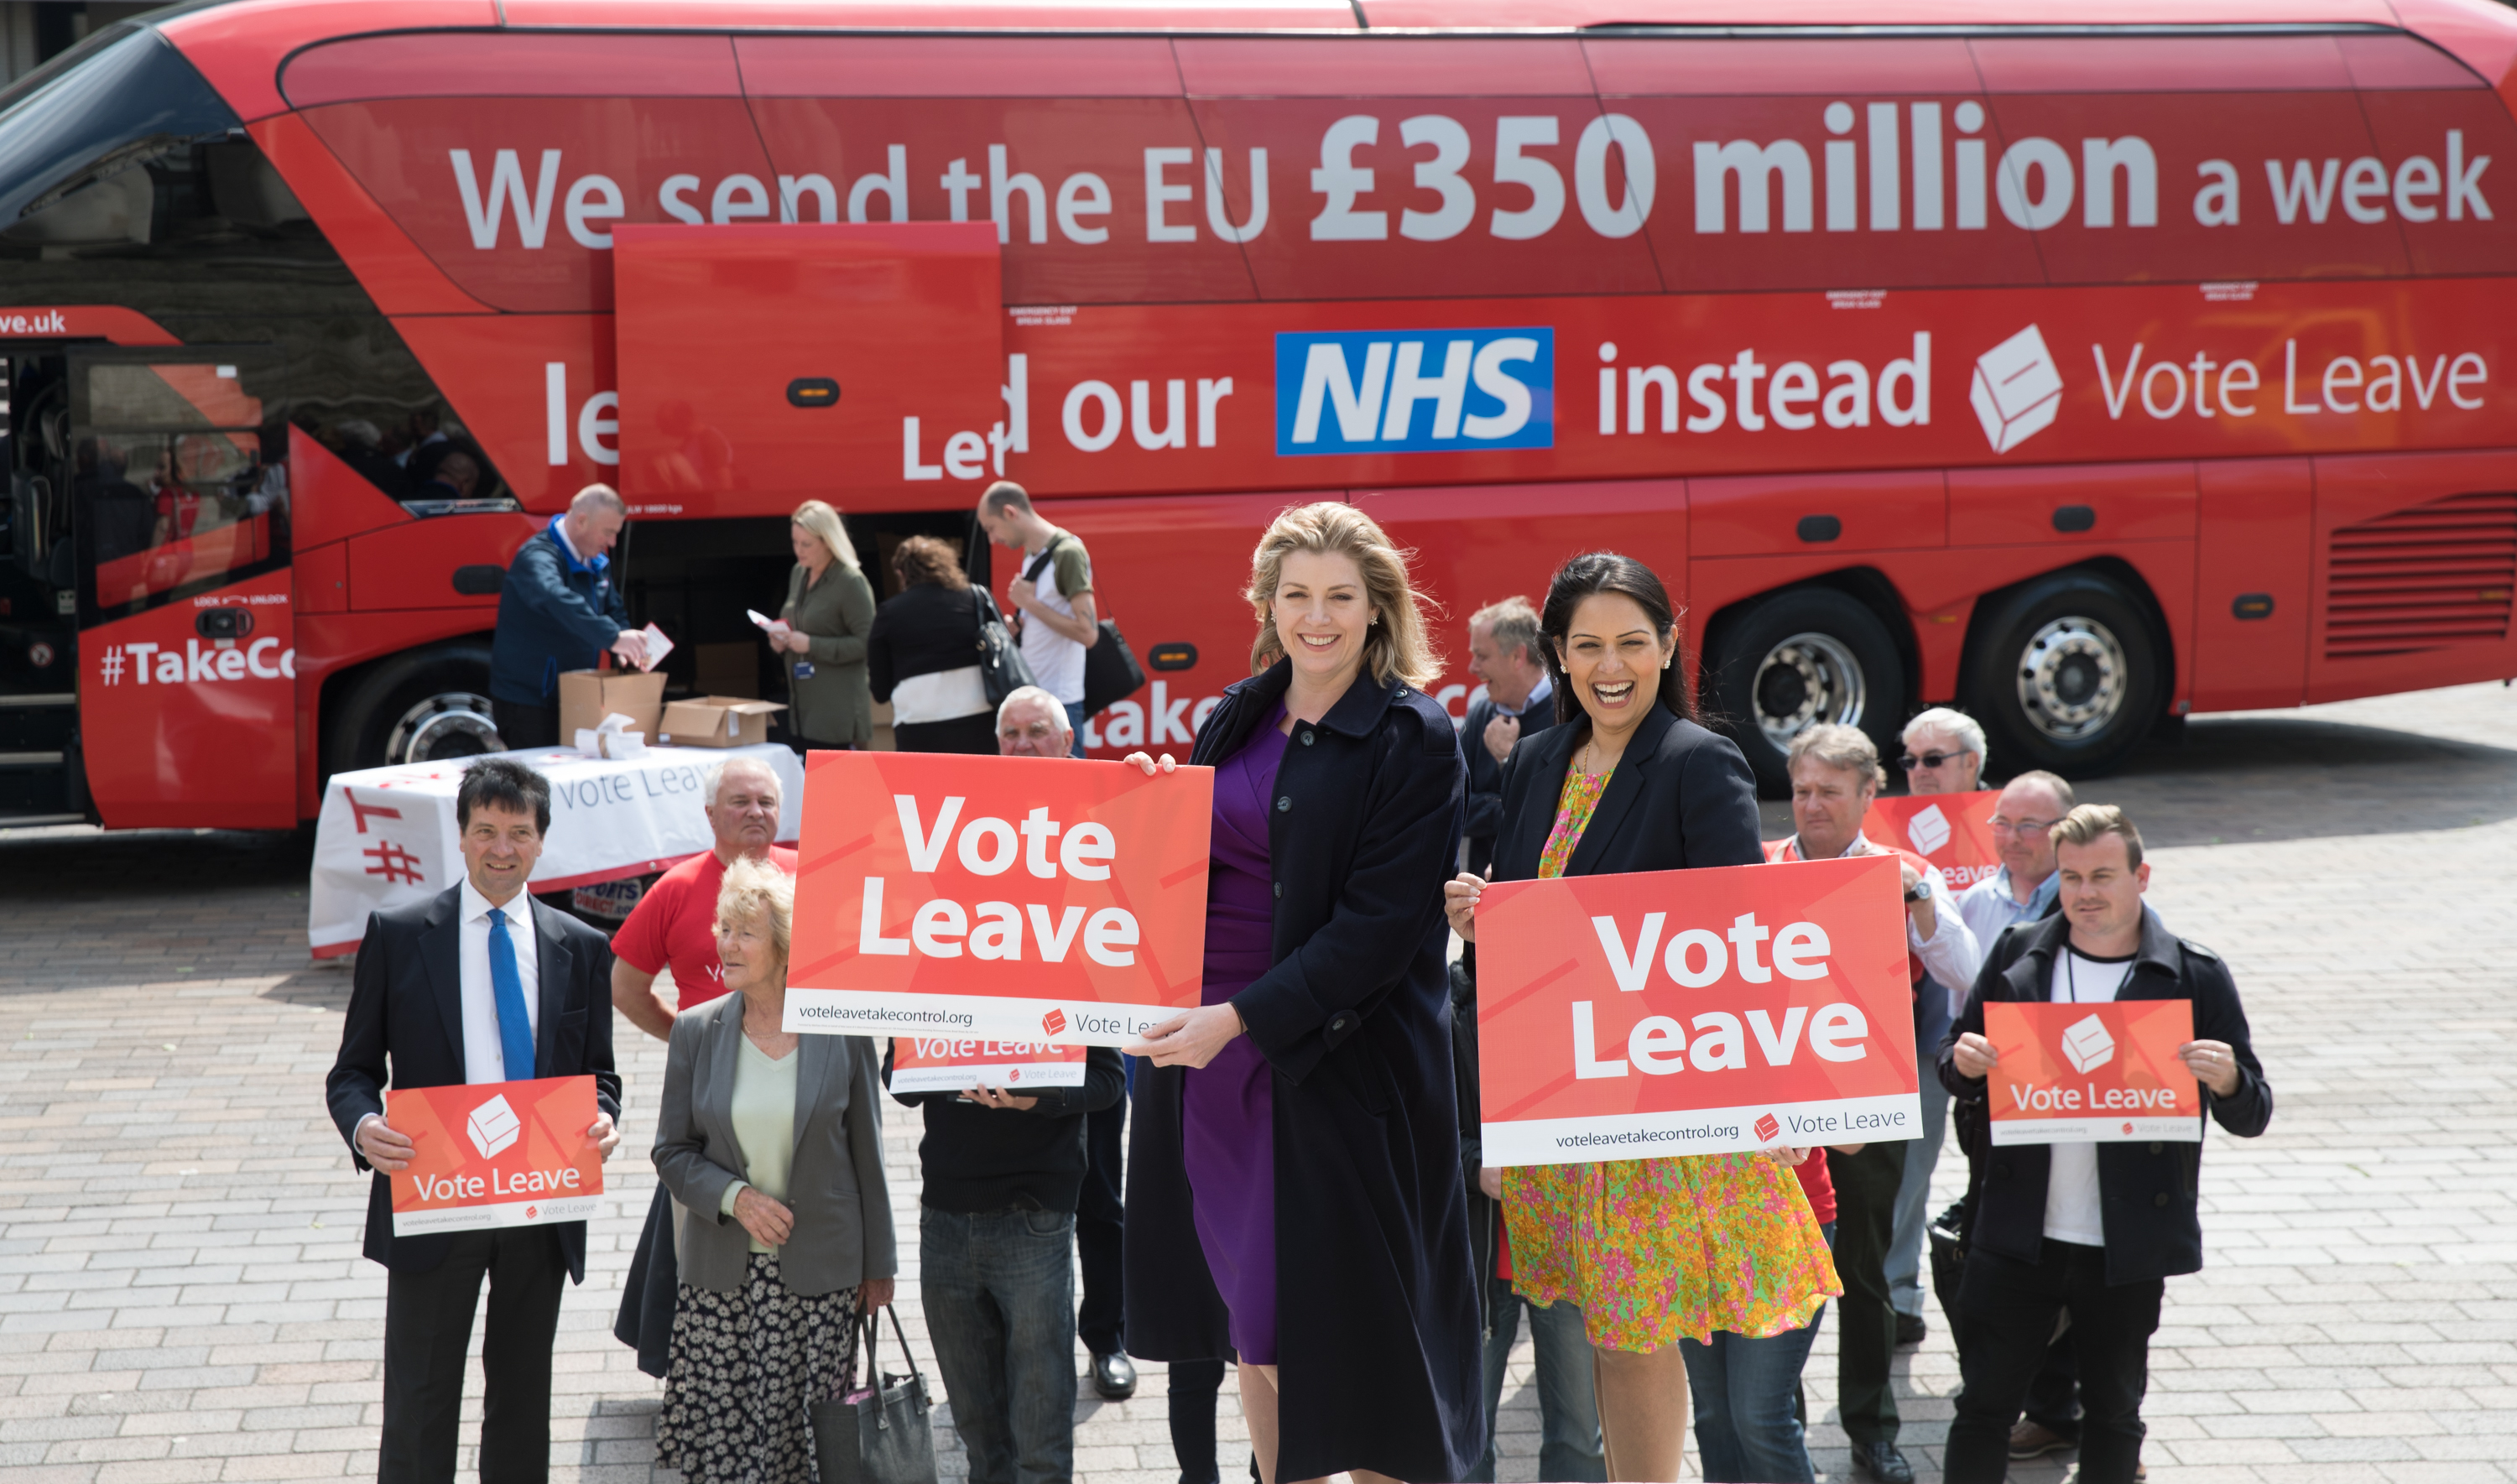 Vote Leave was the main group that campaigned for Brexit.